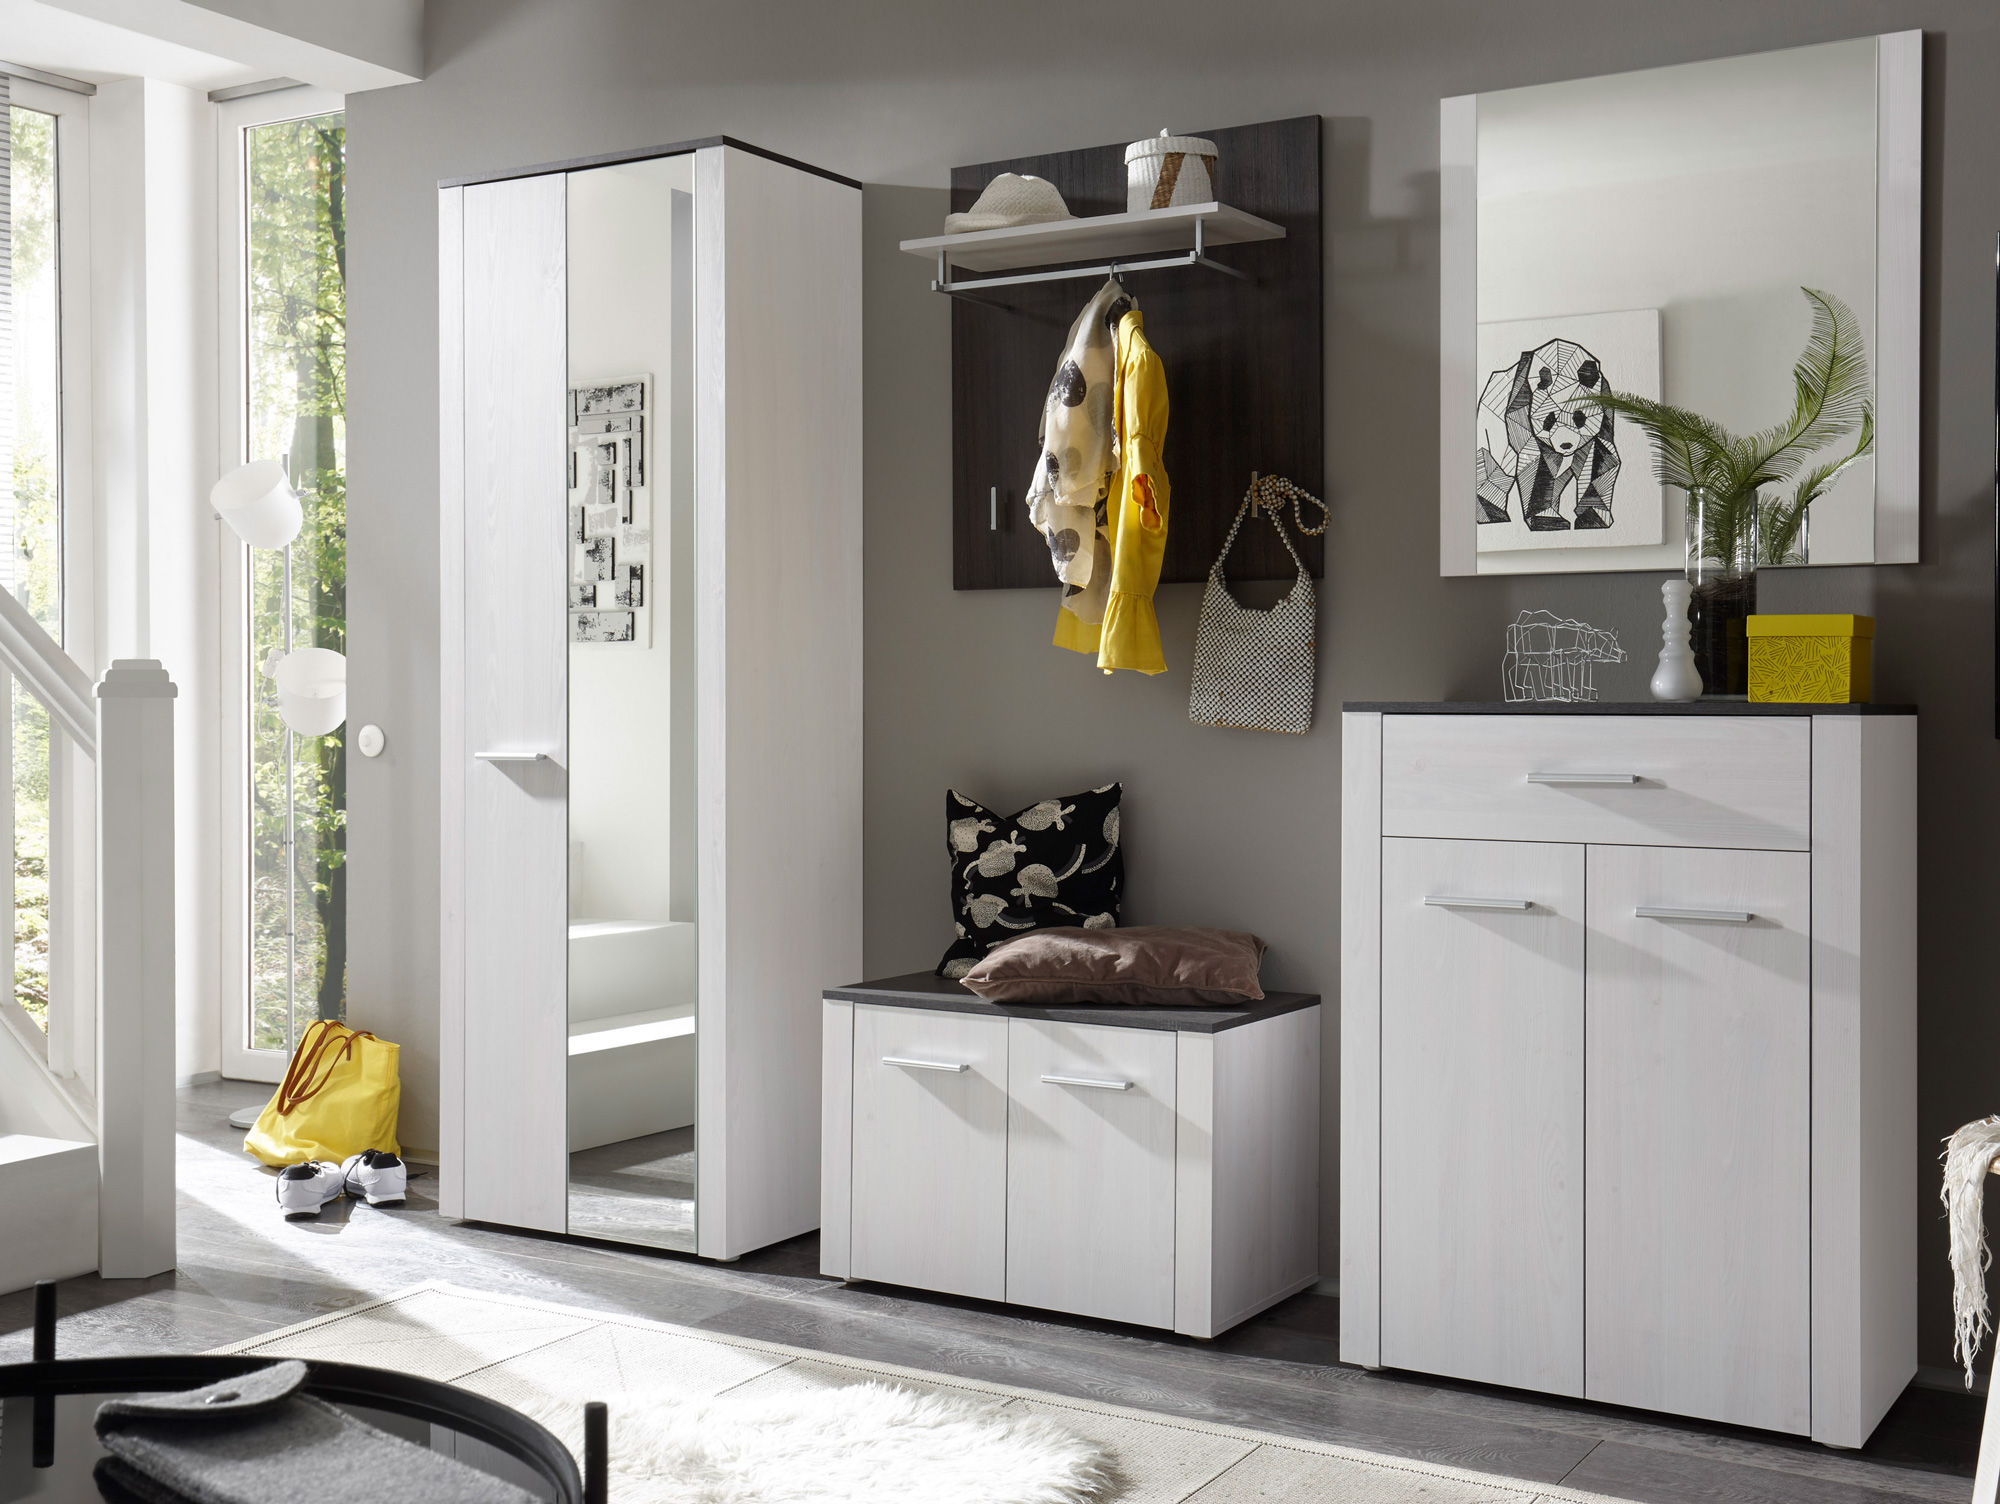 deria komplett garderobe sibiu l rche touchwood. Black Bedroom Furniture Sets. Home Design Ideas